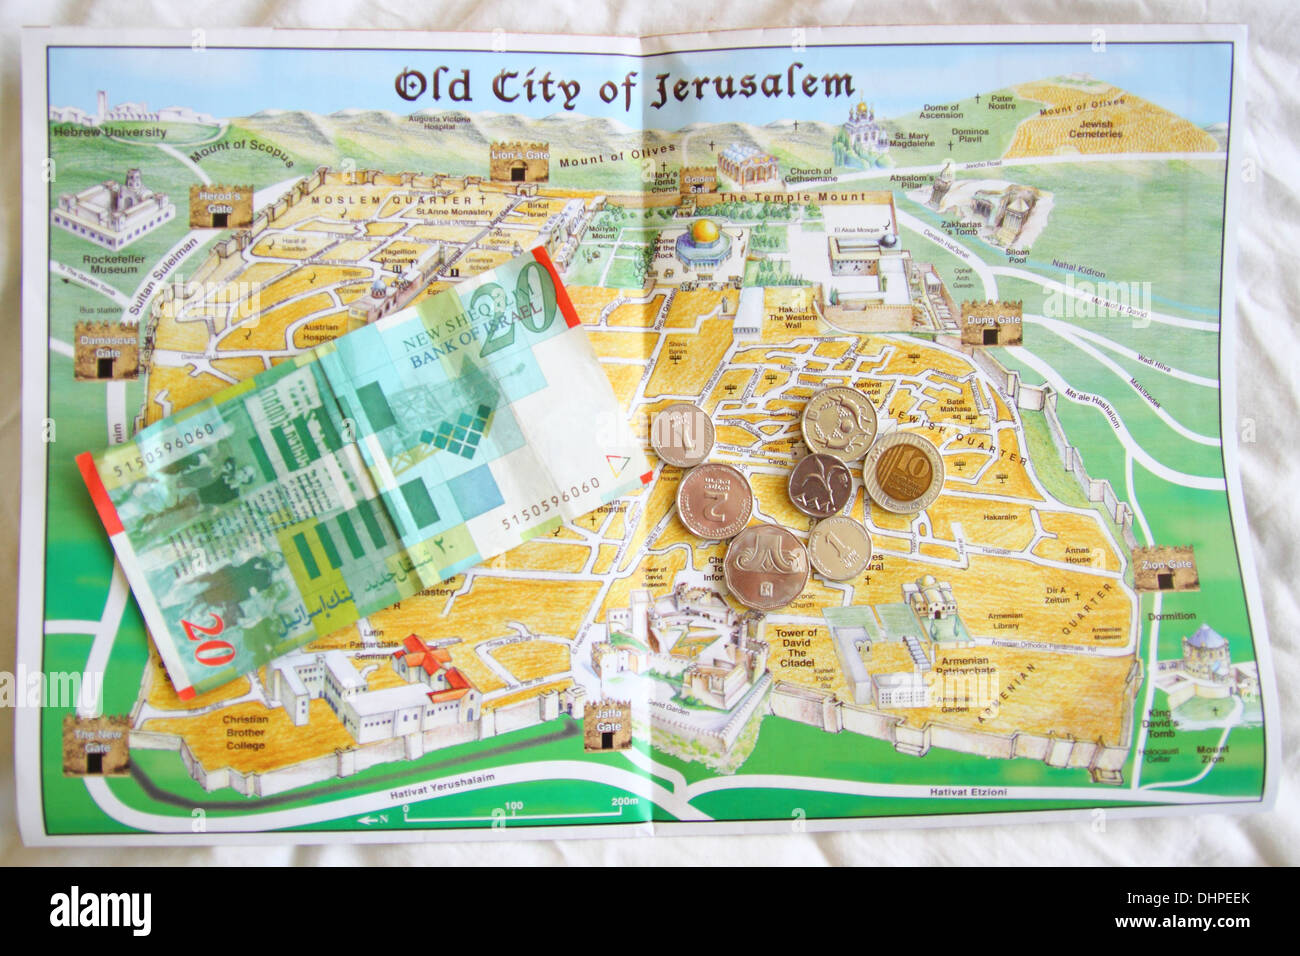 This is map of the old city of jerusalem in israel with the ancient this is map of the old city of jerusalem in israel with the ancient currency of shekels on top gumiabroncs Choice Image